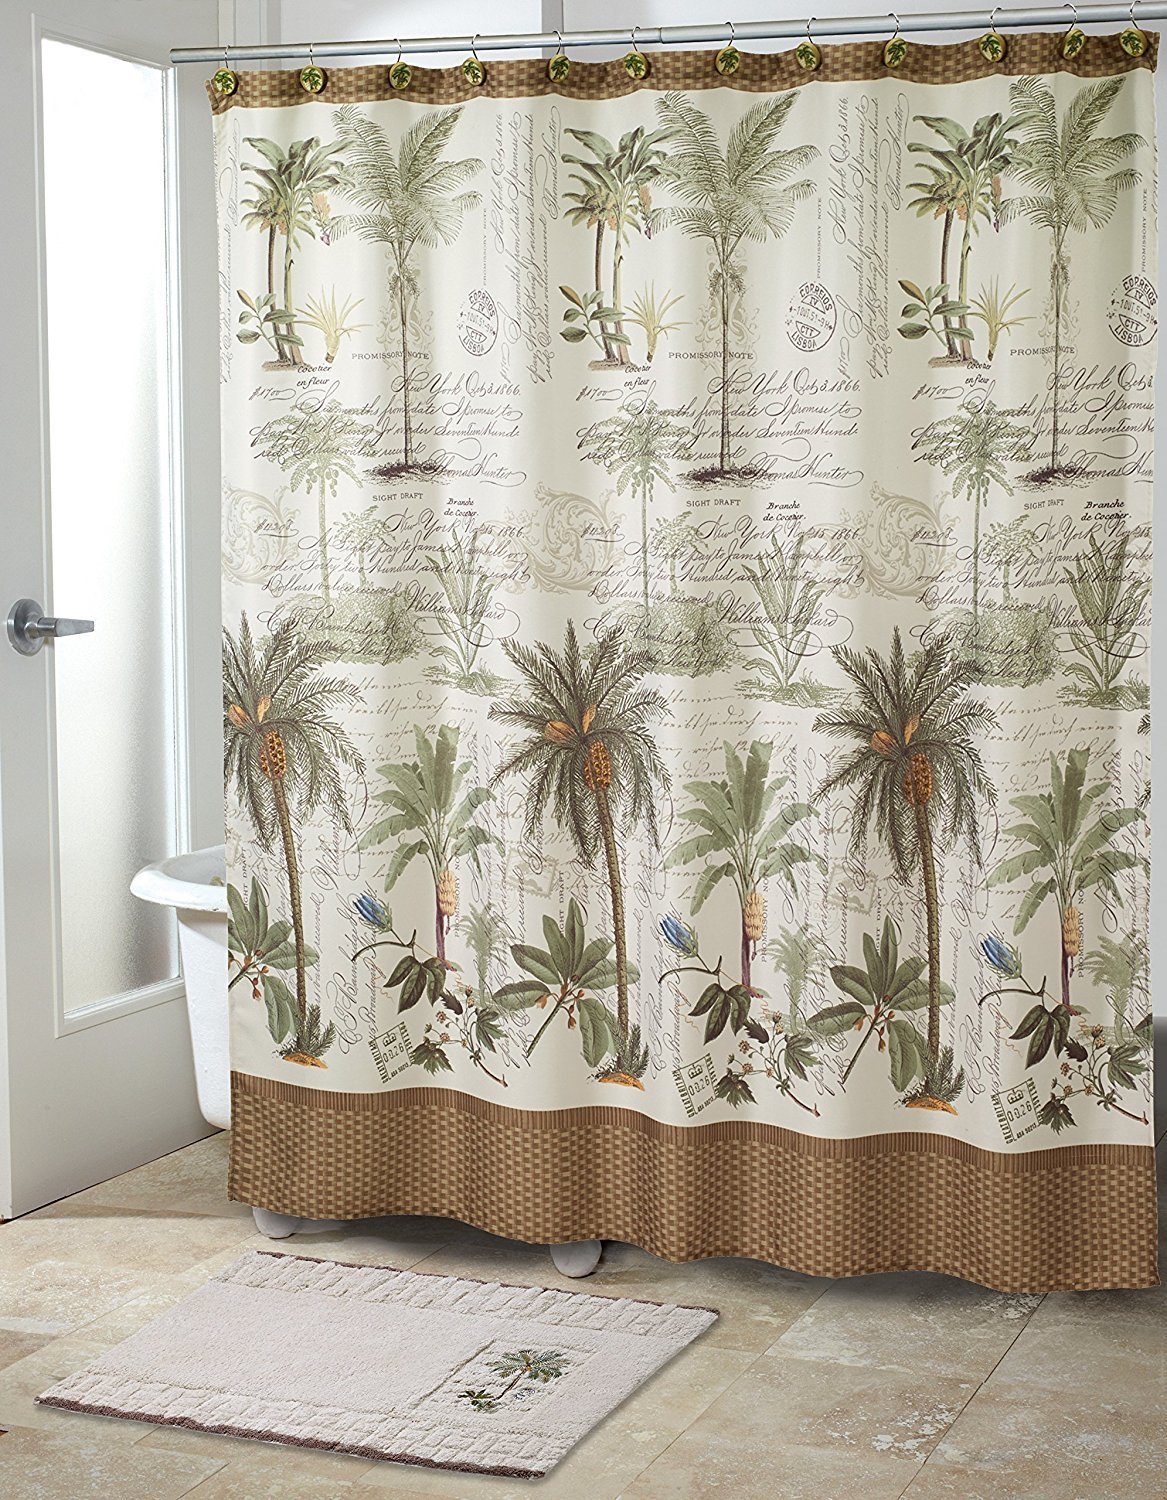 Curtain Tommy Bahama Shower Curtain For Beauty Bathroom regarding proportions 1167 X 1500